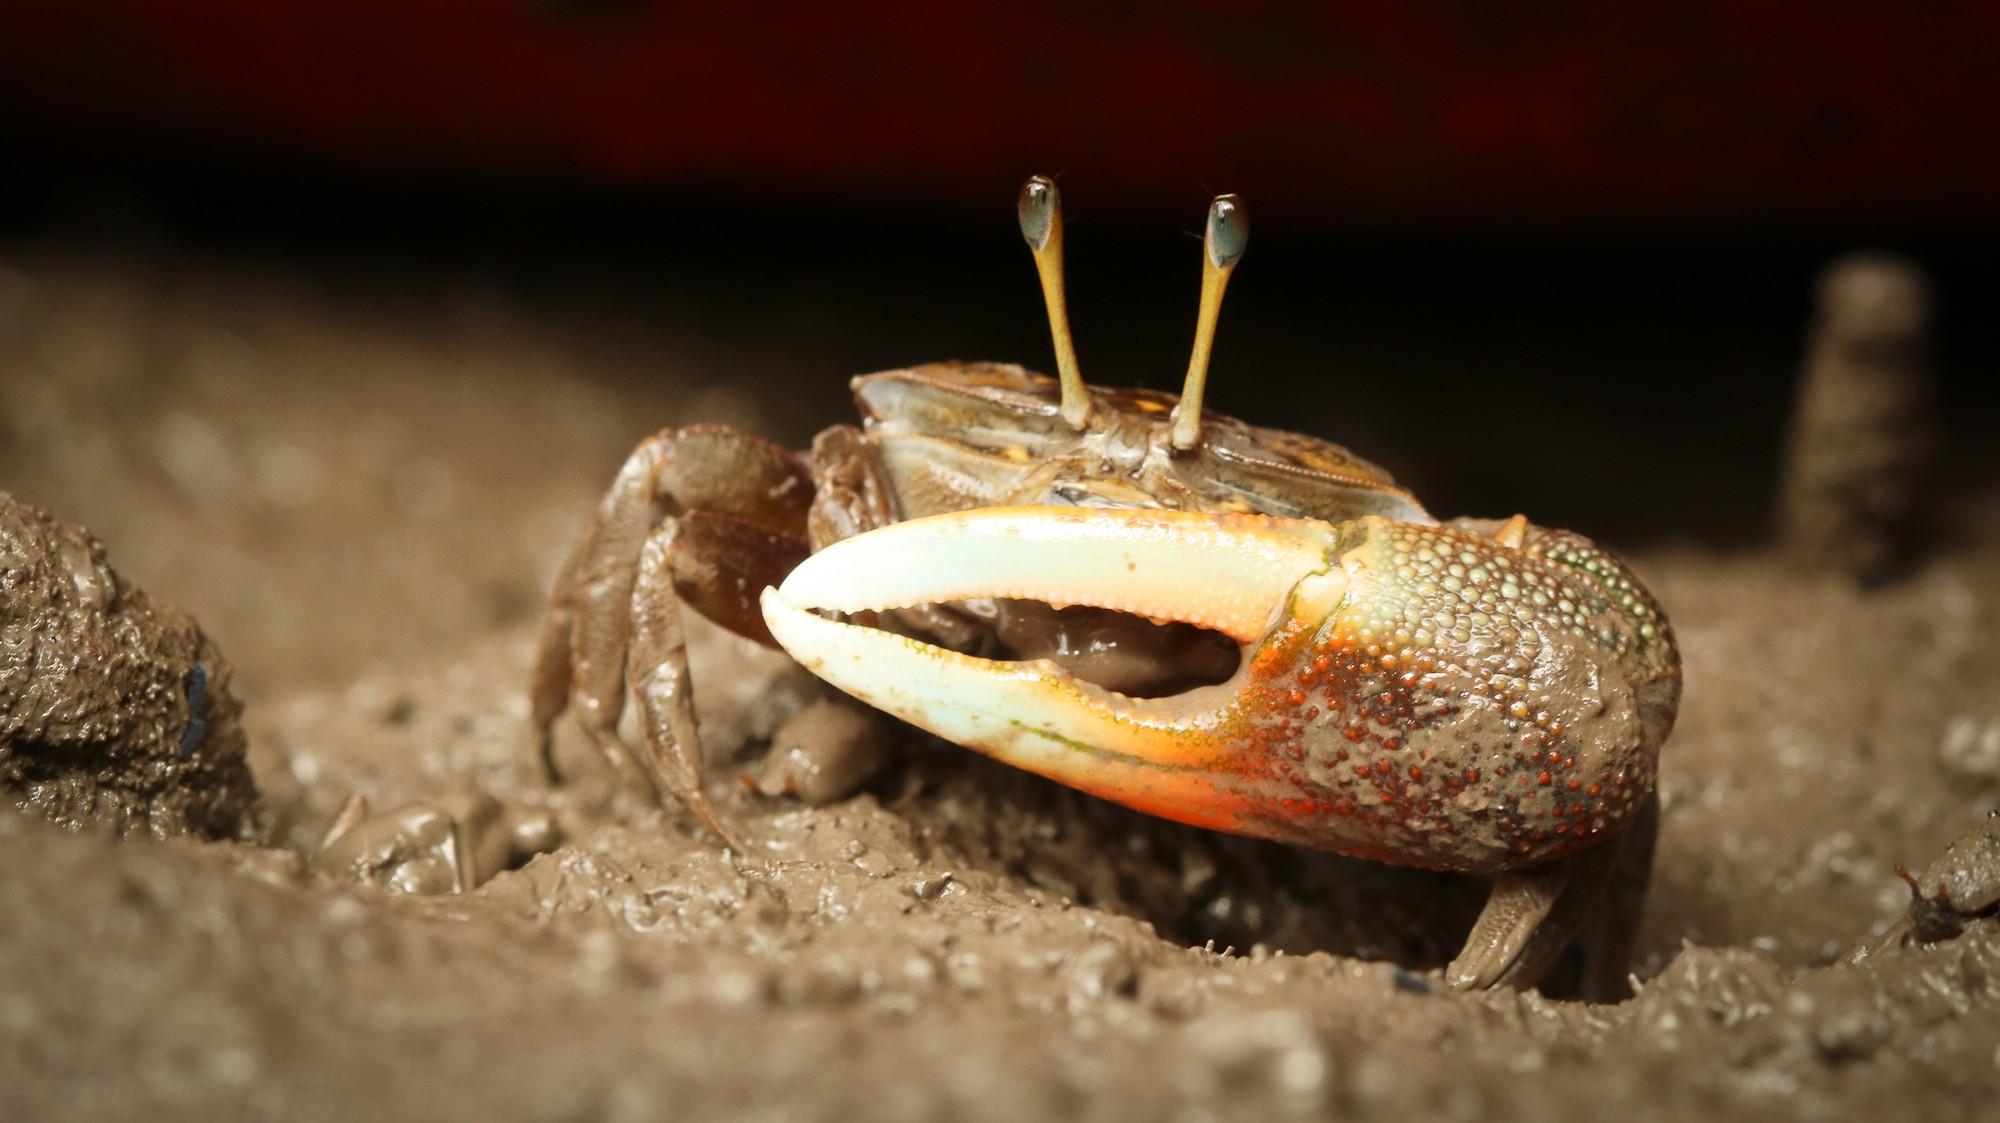 Fiddler crabs are usually 2-5 cm in size. They have five pairs of legs and a two claws; the large claw can be almost half its body weight. Photo: Abhishek Jamalabad